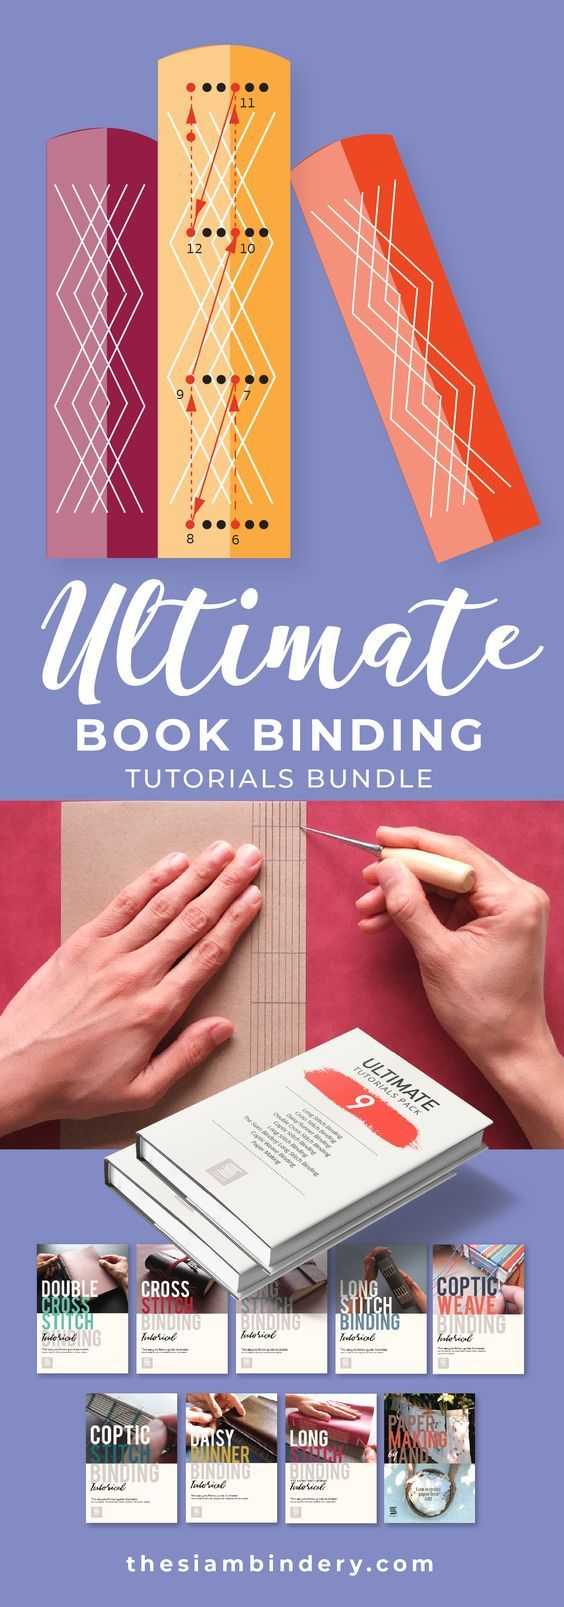 Ultimate Tutorials Pack Includes 8 Bookbinding + 1